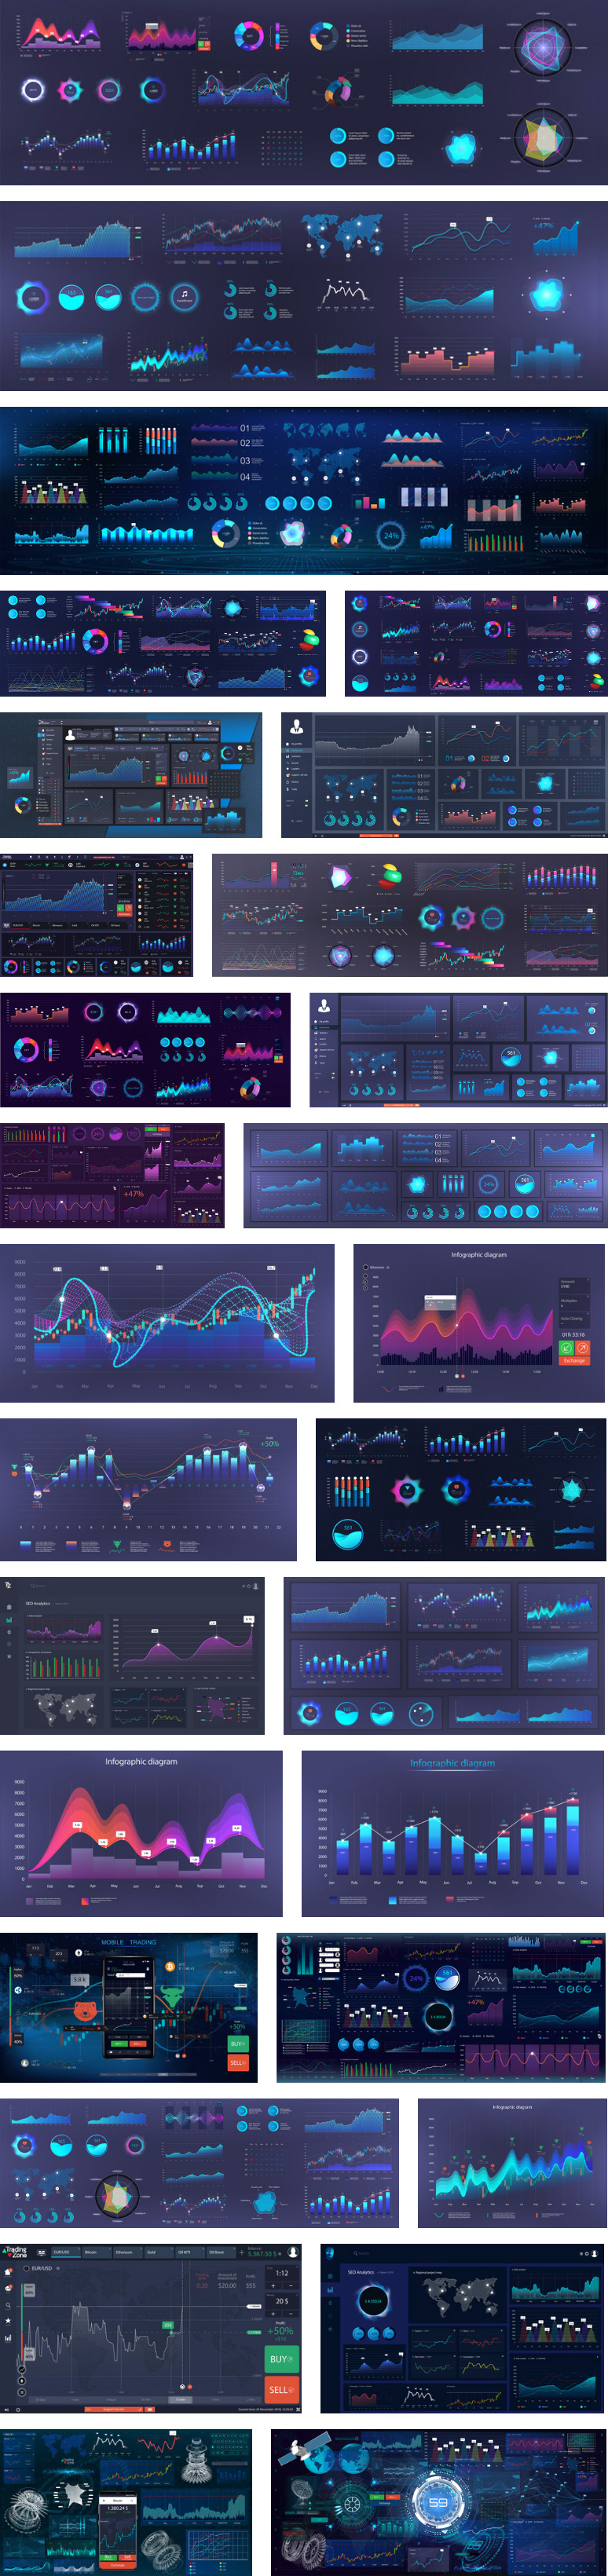 Infographic dashboard templates with charts, diagrams, graphic elements, online statistics, and data analytics available for download as vector graphics